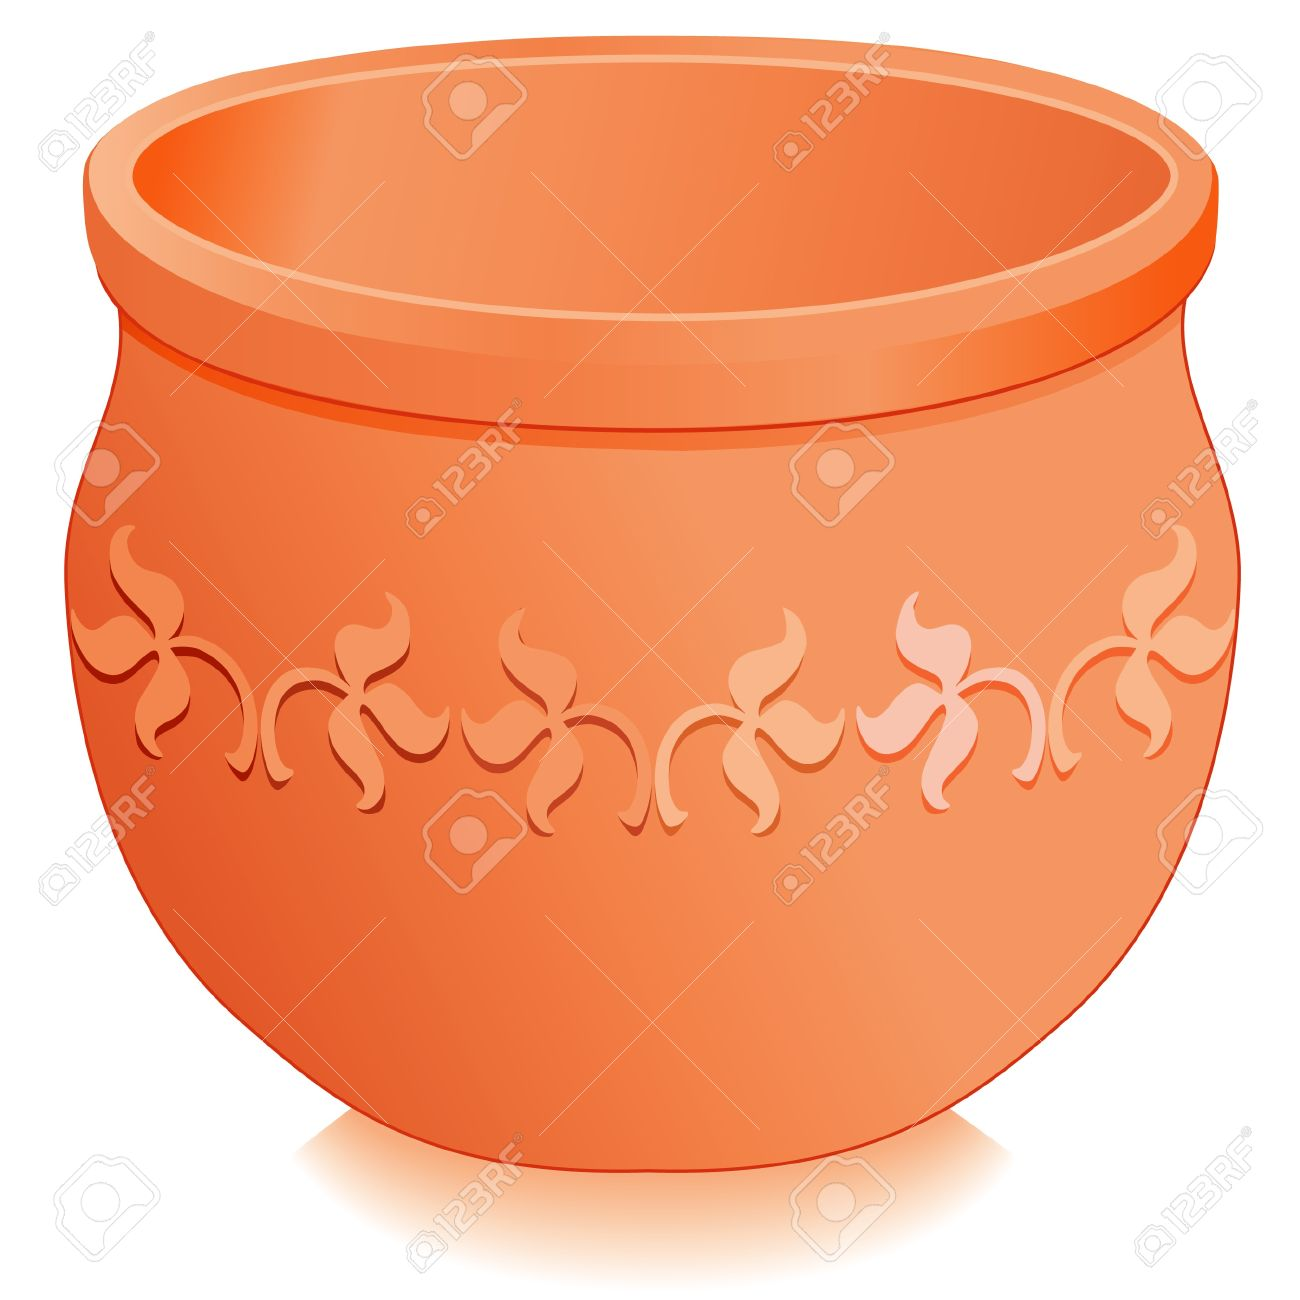 Flowerpot Planter Round Clay Pottery With Embossed Floral Designs.